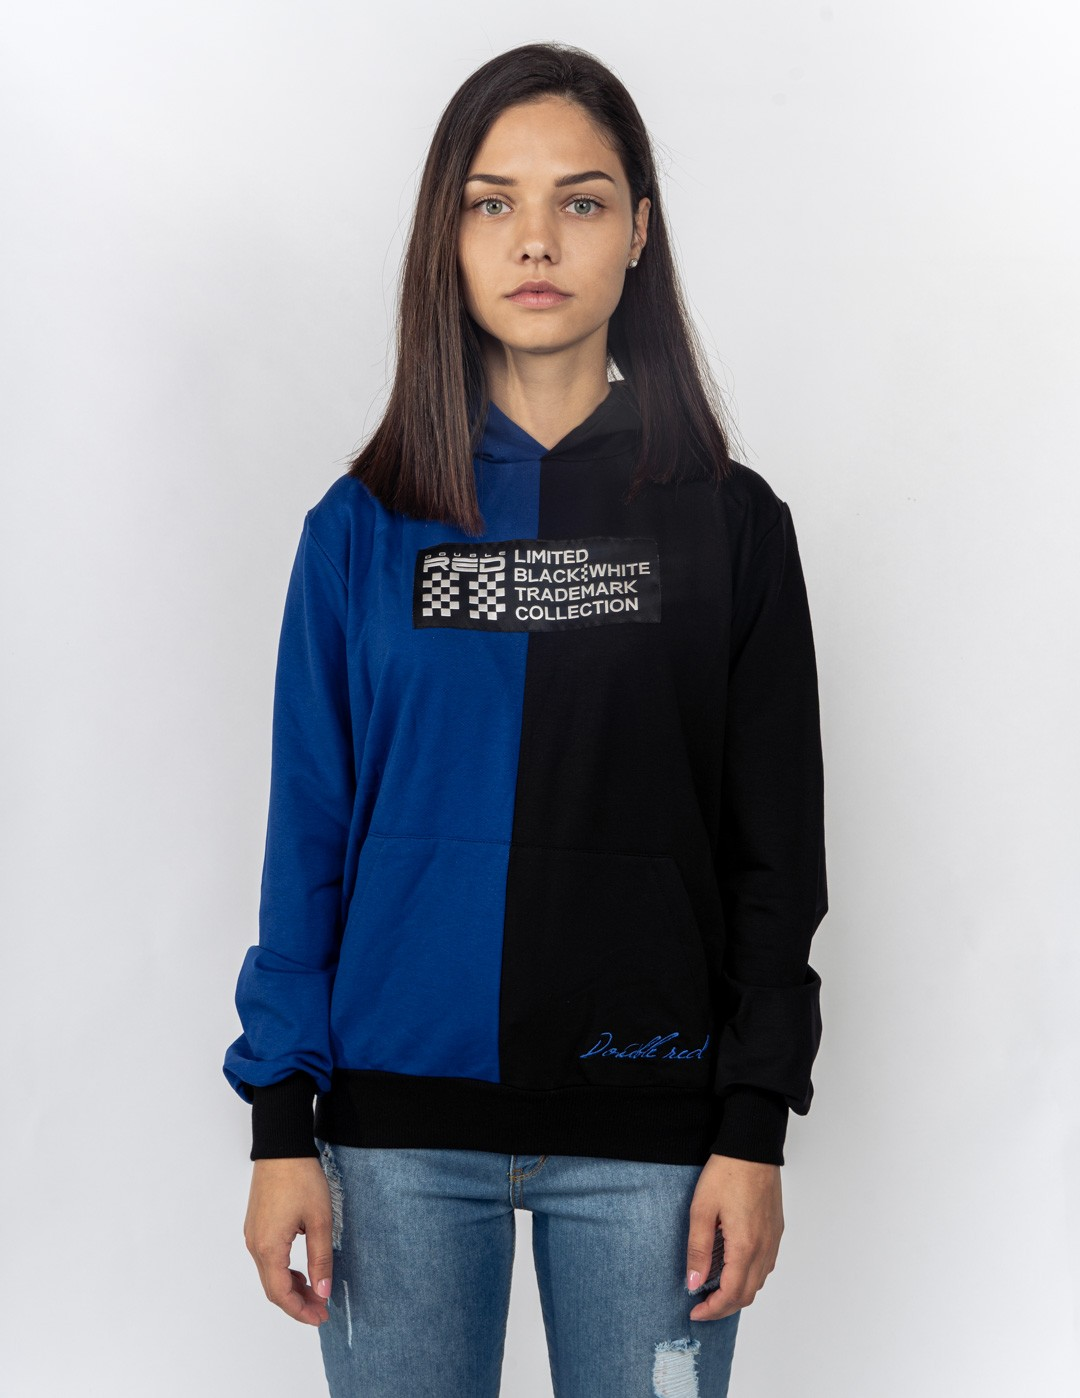 Hoodie DOUBLE FACE NEON Streets Collection Blue/Black